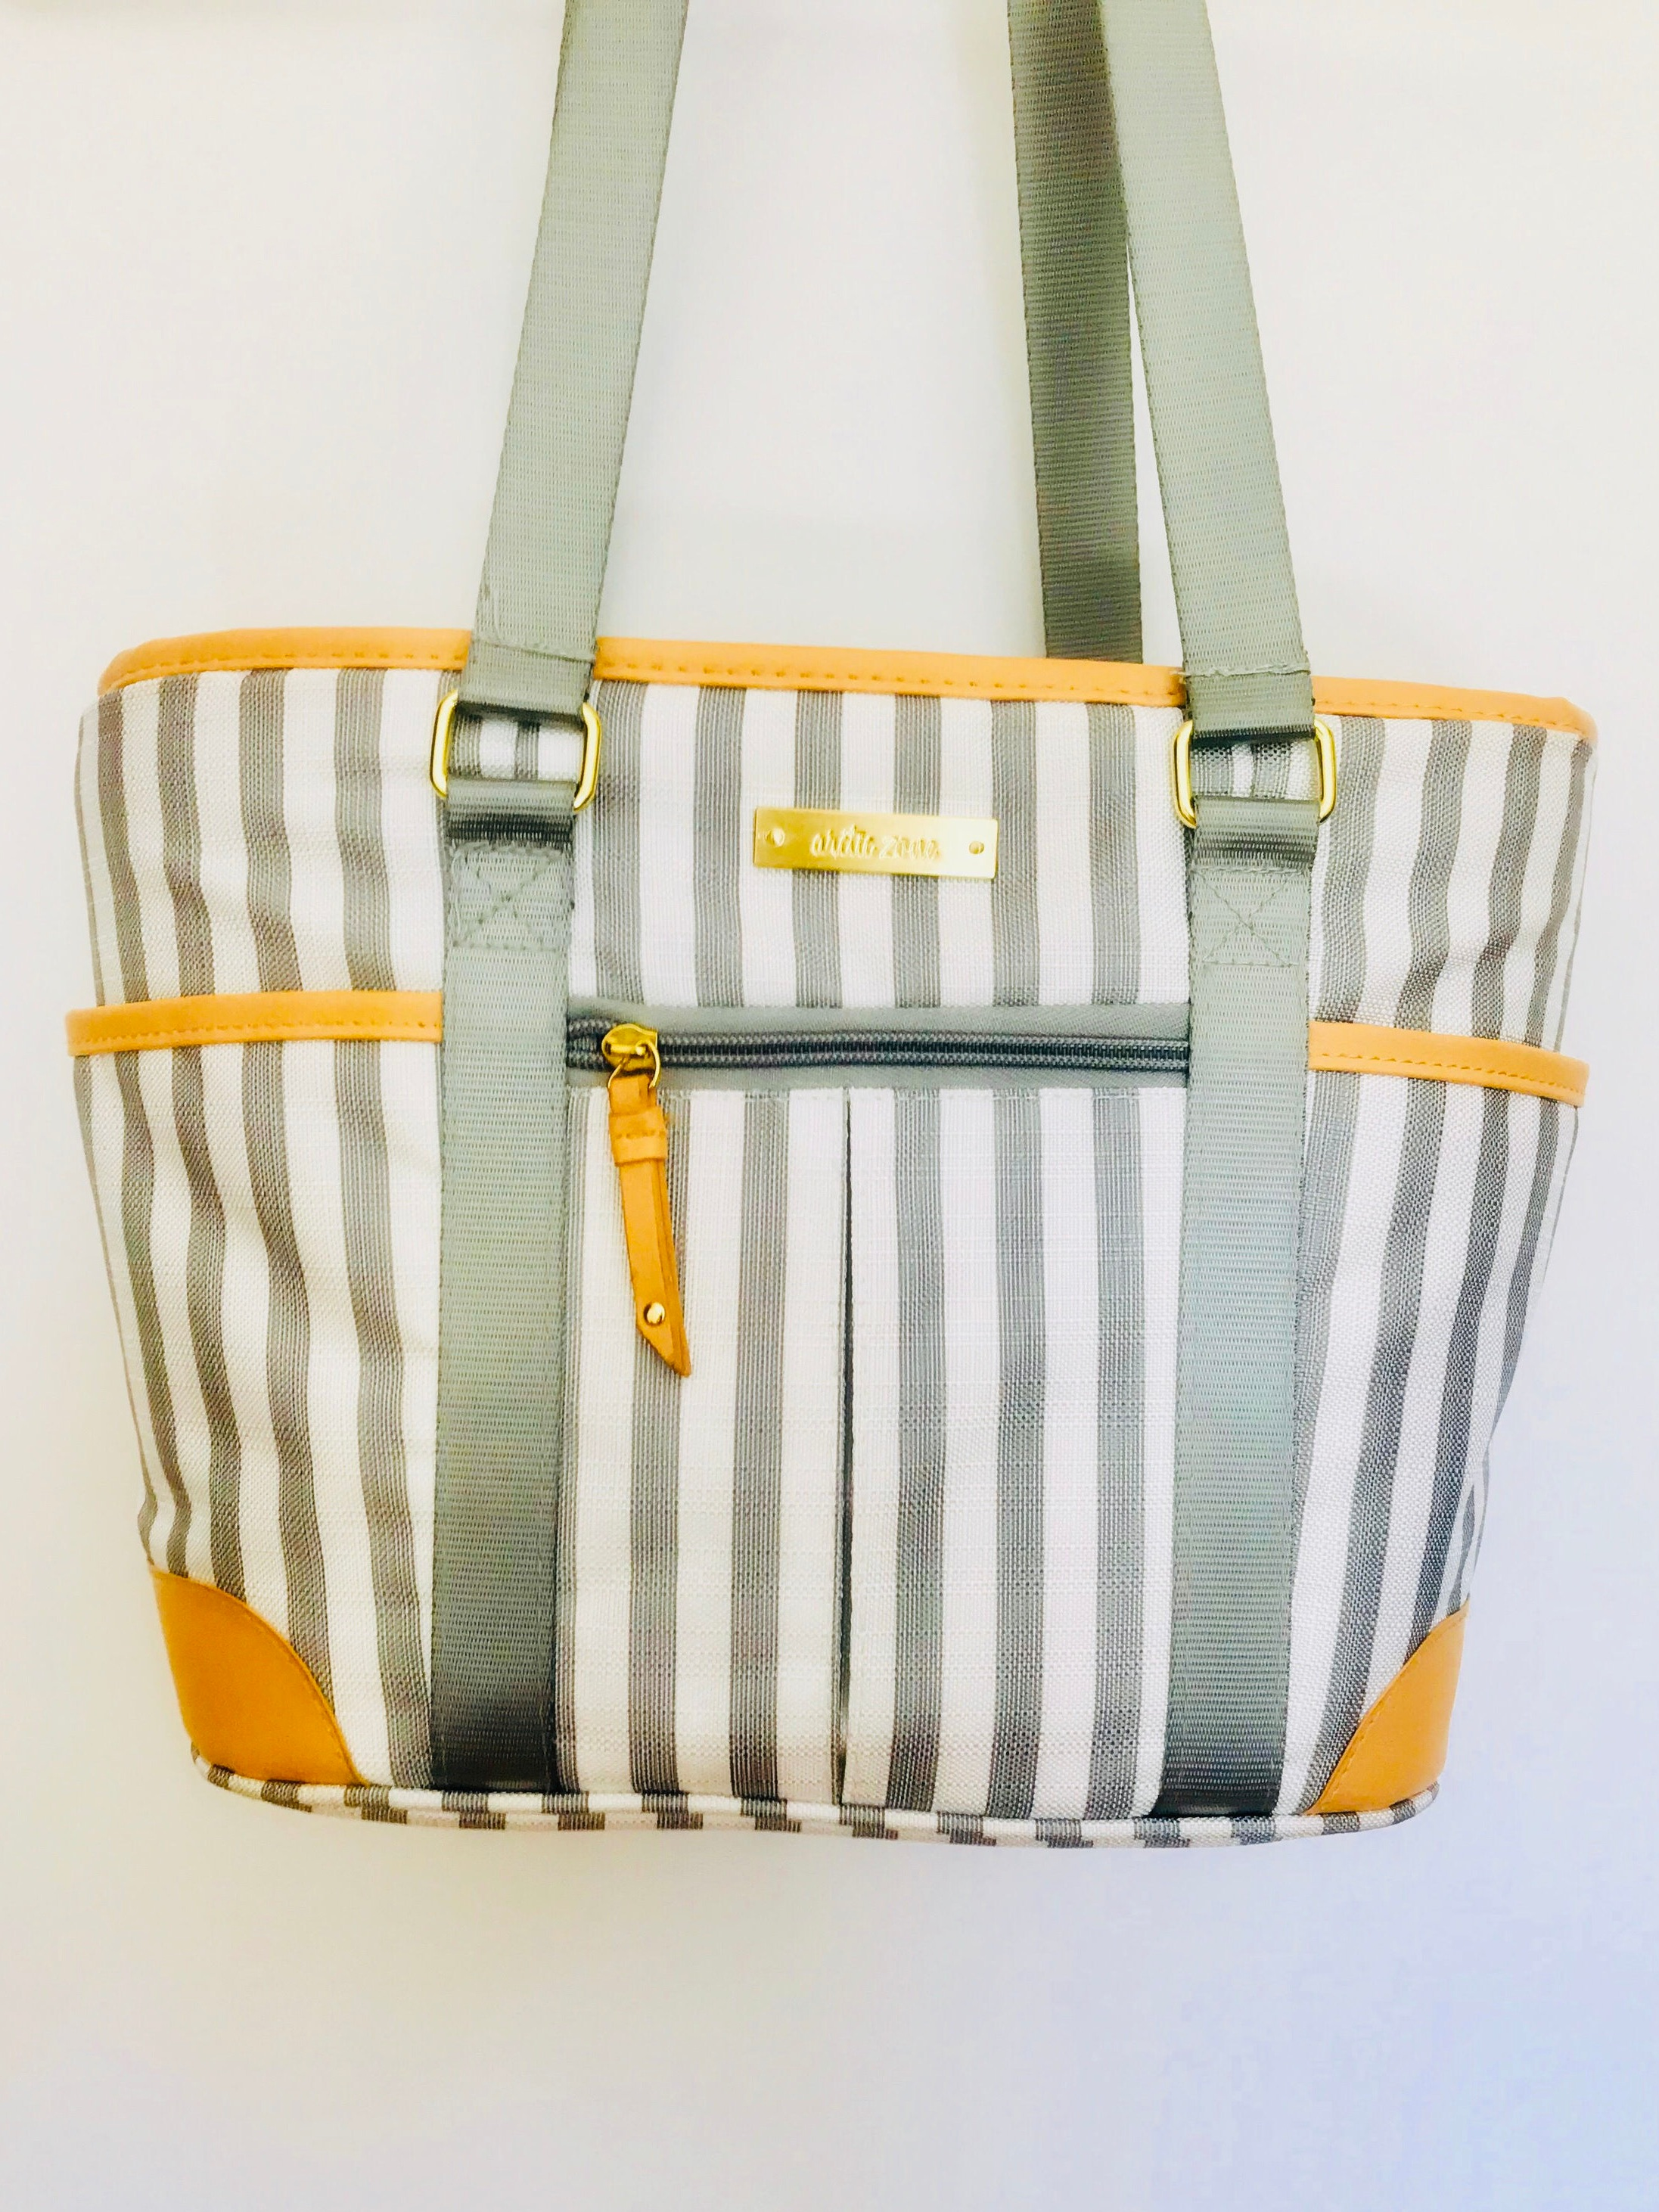 5. Cooler Bag - Cooler for packing drinks/snacks for the beach, which will also double as my new work lunchbox & looks like a purse!Price: $16Sam's Club